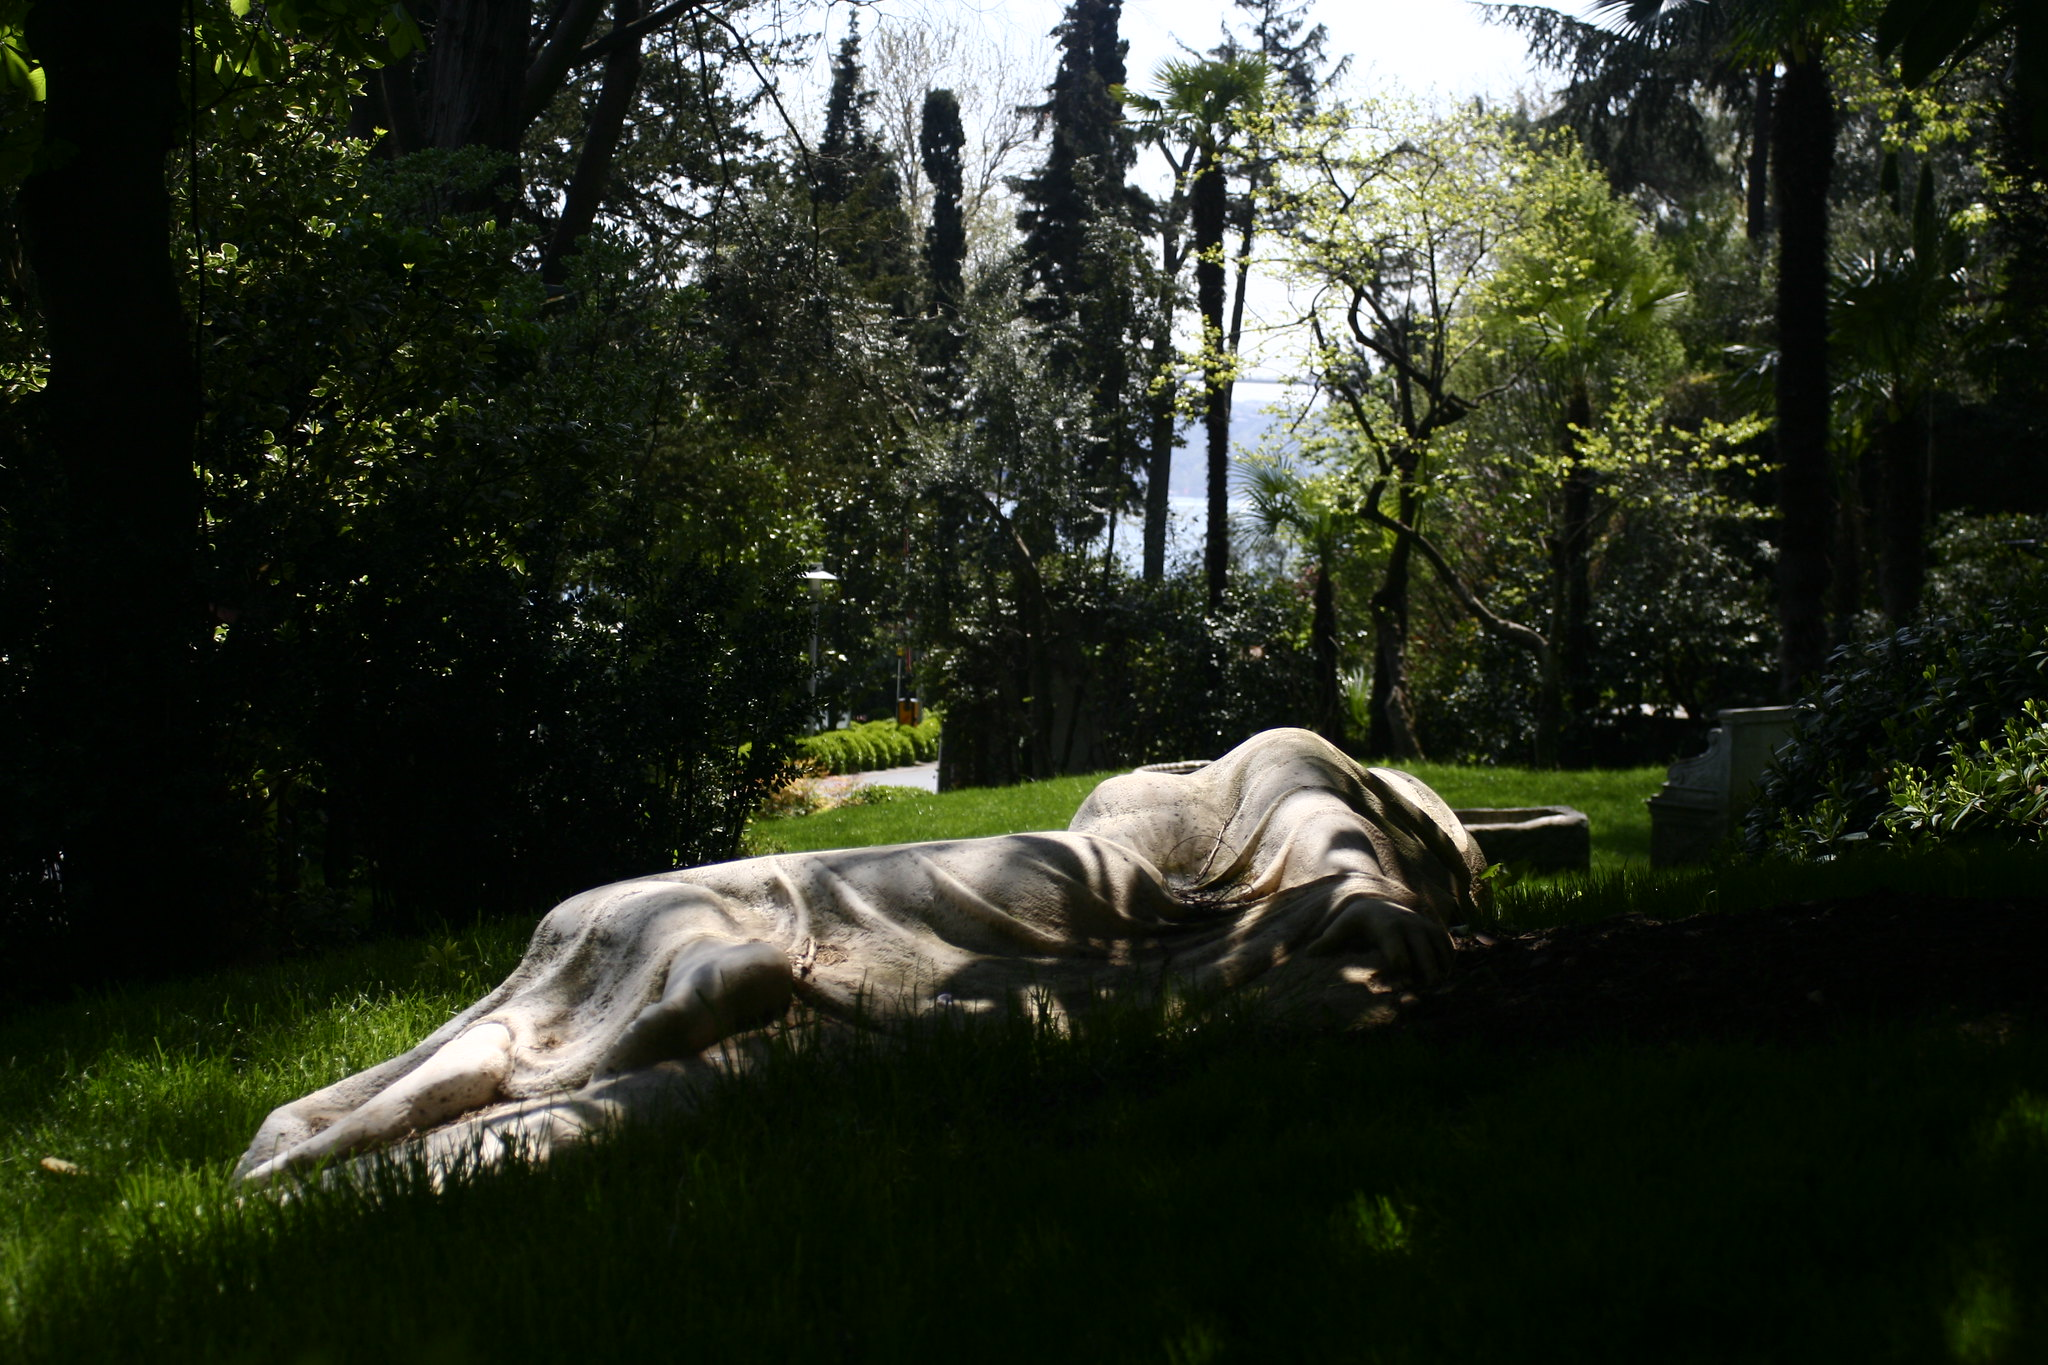 Sculpture in the garden of the Sakıp Sabancı Museum.